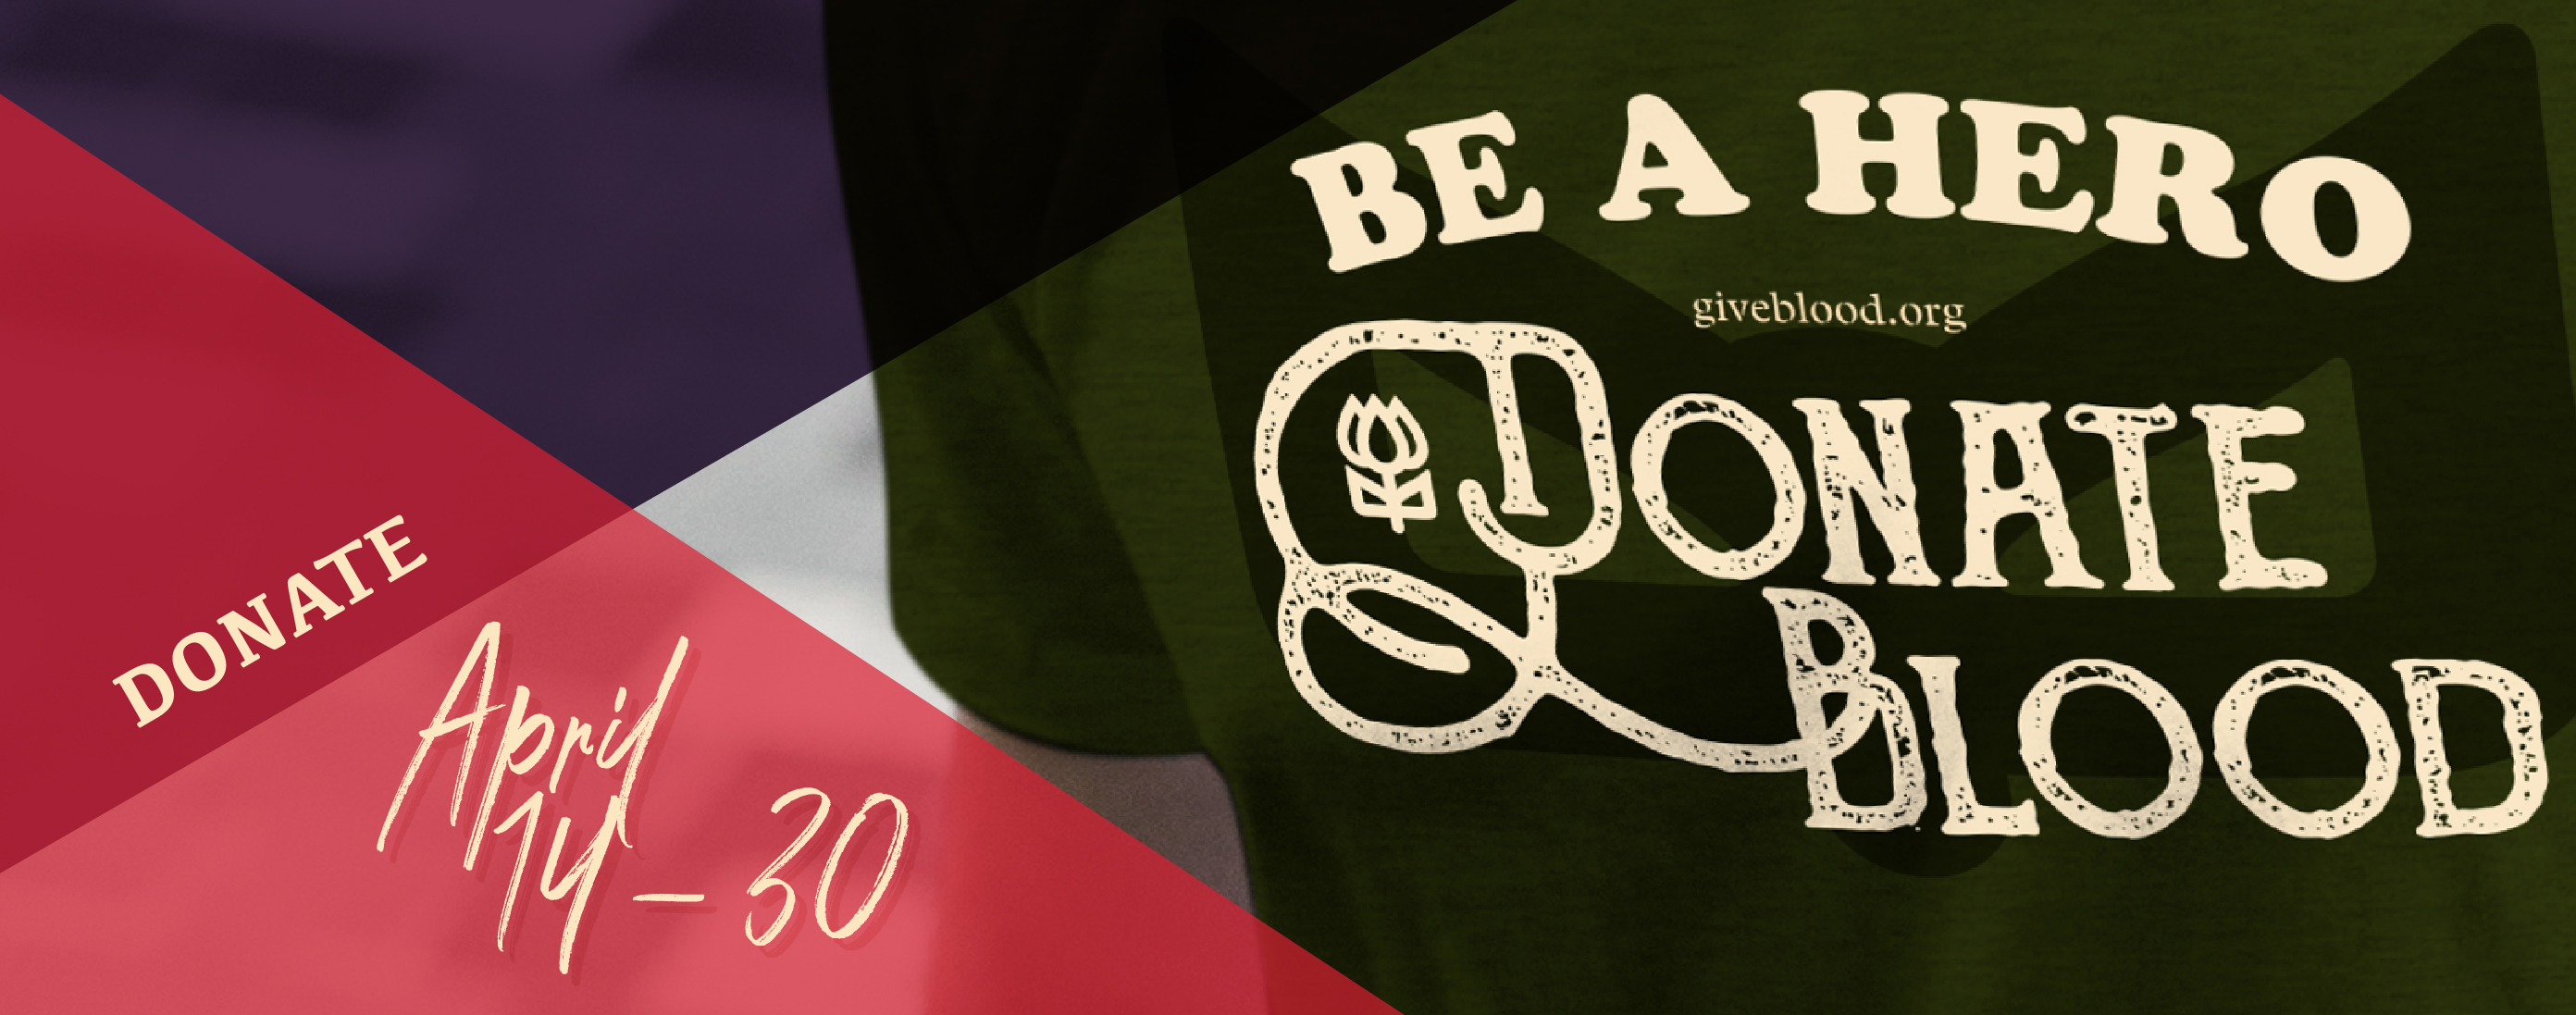 Be A Hero Web Banner 01